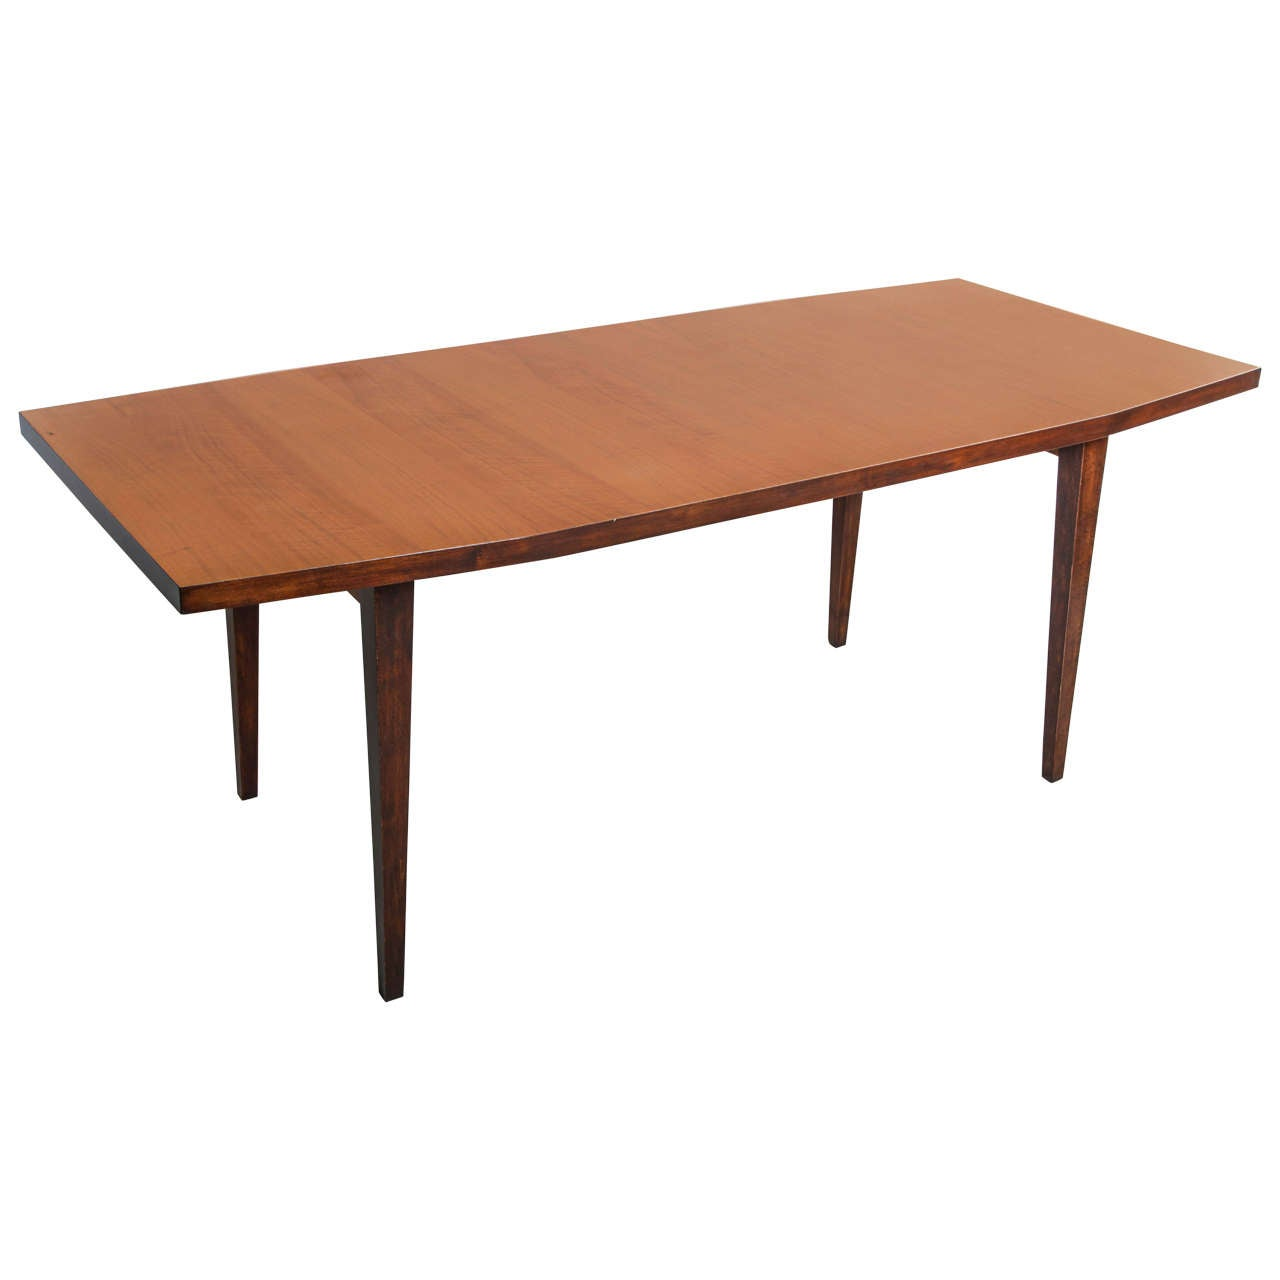 d5730d1ed79229 Extra Long Dining or Conference Table by Kondor Möbel-Perfektion ...